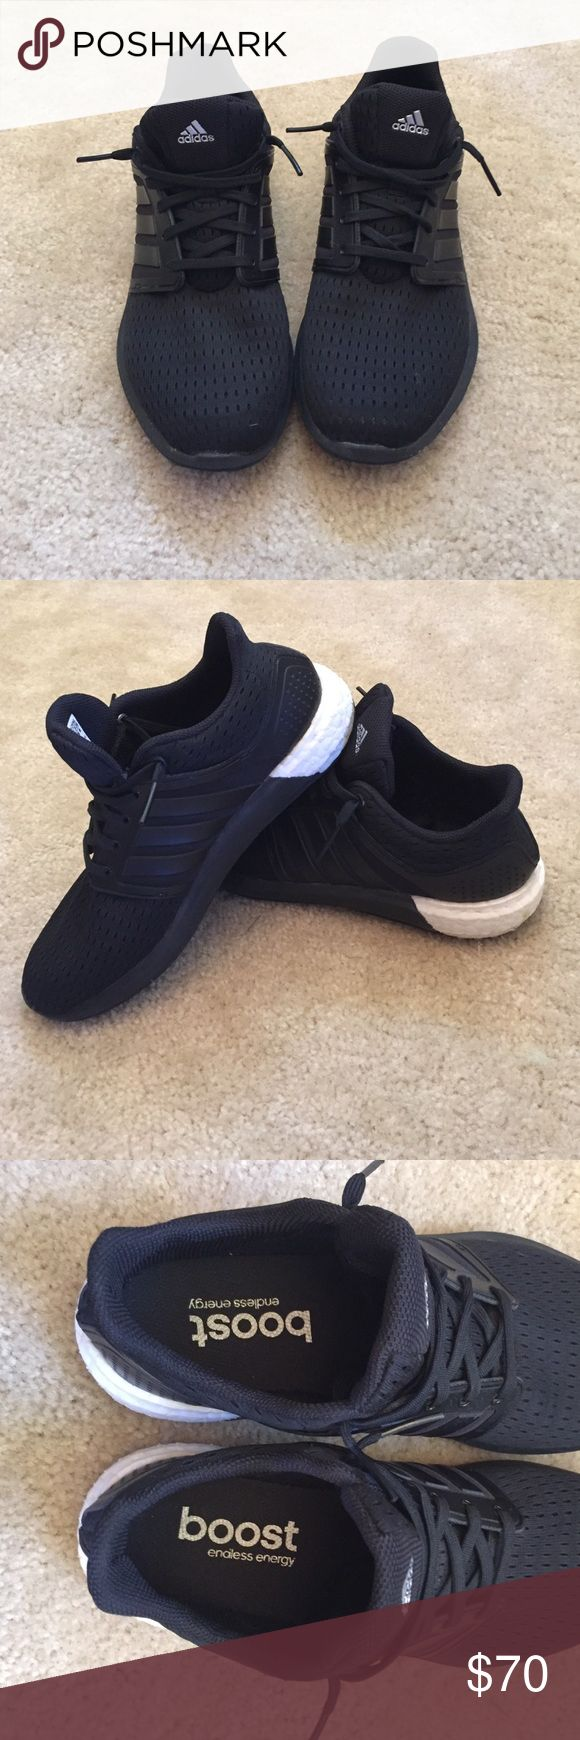 Black Adidas boost shoes All black shoe. Mesh material around toes. Only worn twice. Men's size 7 women size 8.5 adidas Shoes Athletic Shoes